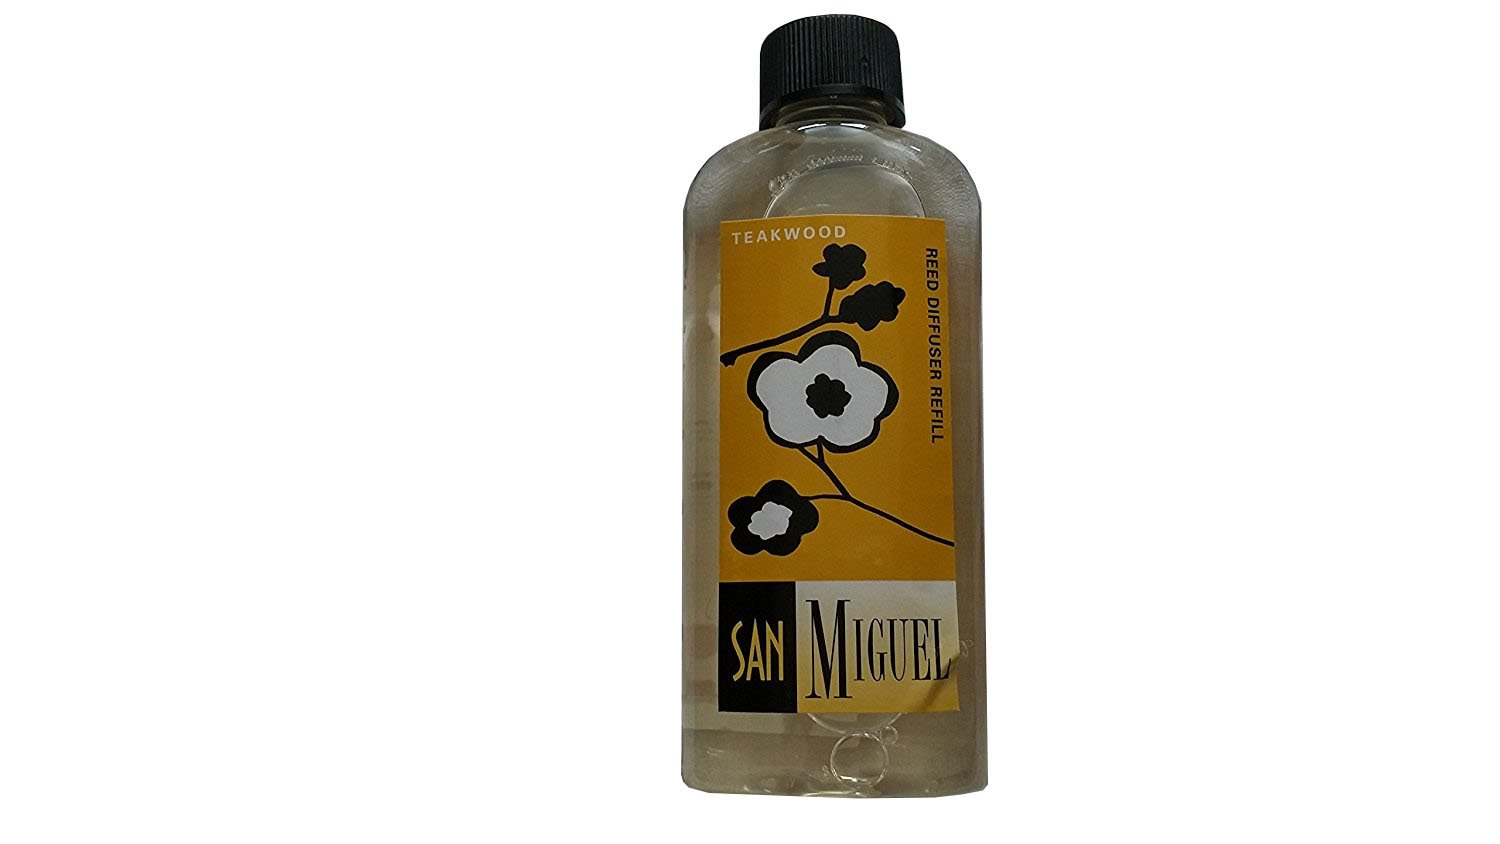 San Miguel 6 Ounce, Liquid Diffuser Refill, Assorted Scents (Teakwood)